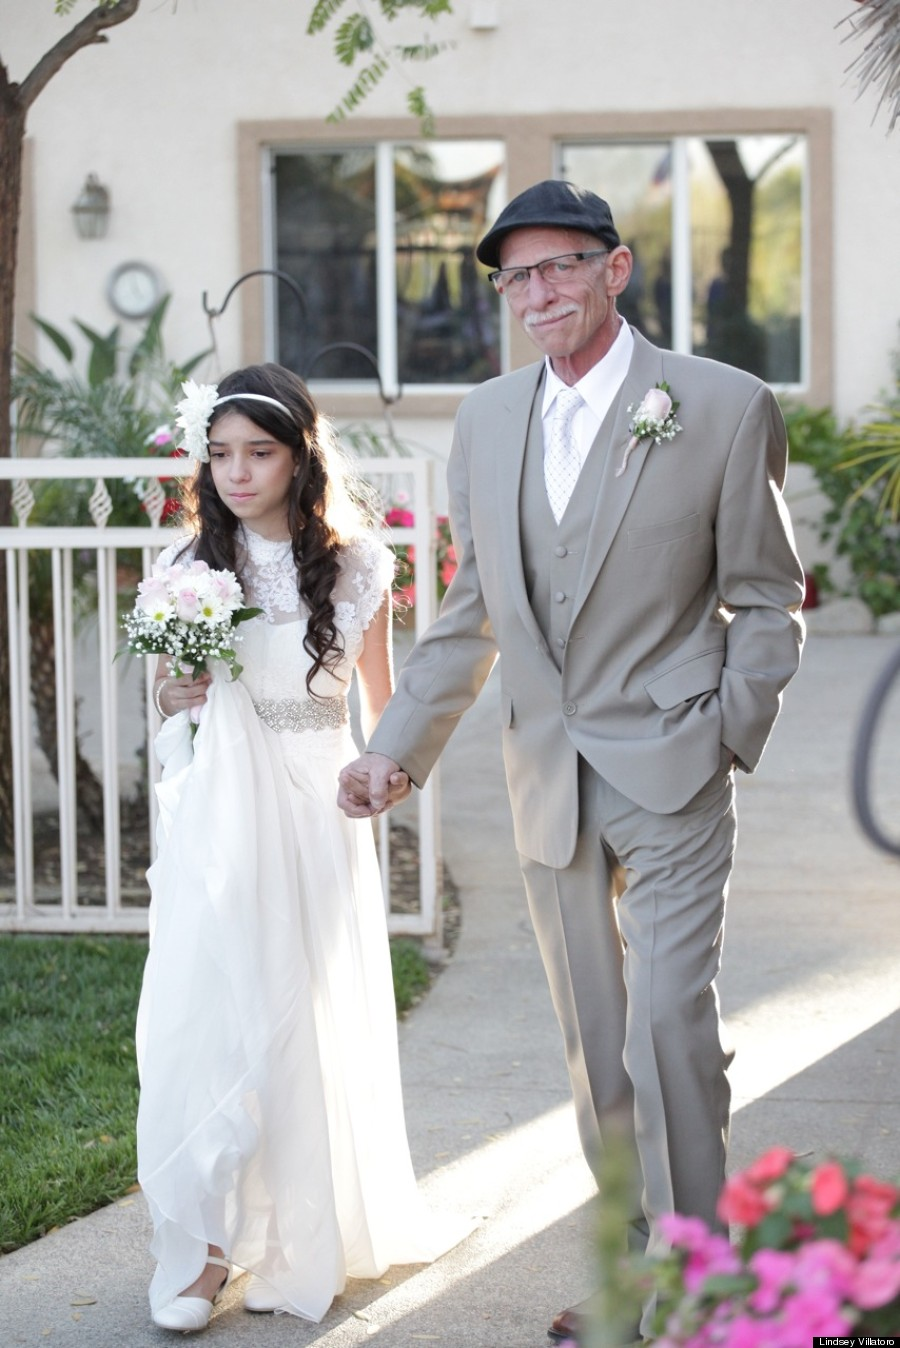 Cancer Stricken Dad Walks 11 Year Old Down The Aisle Because He